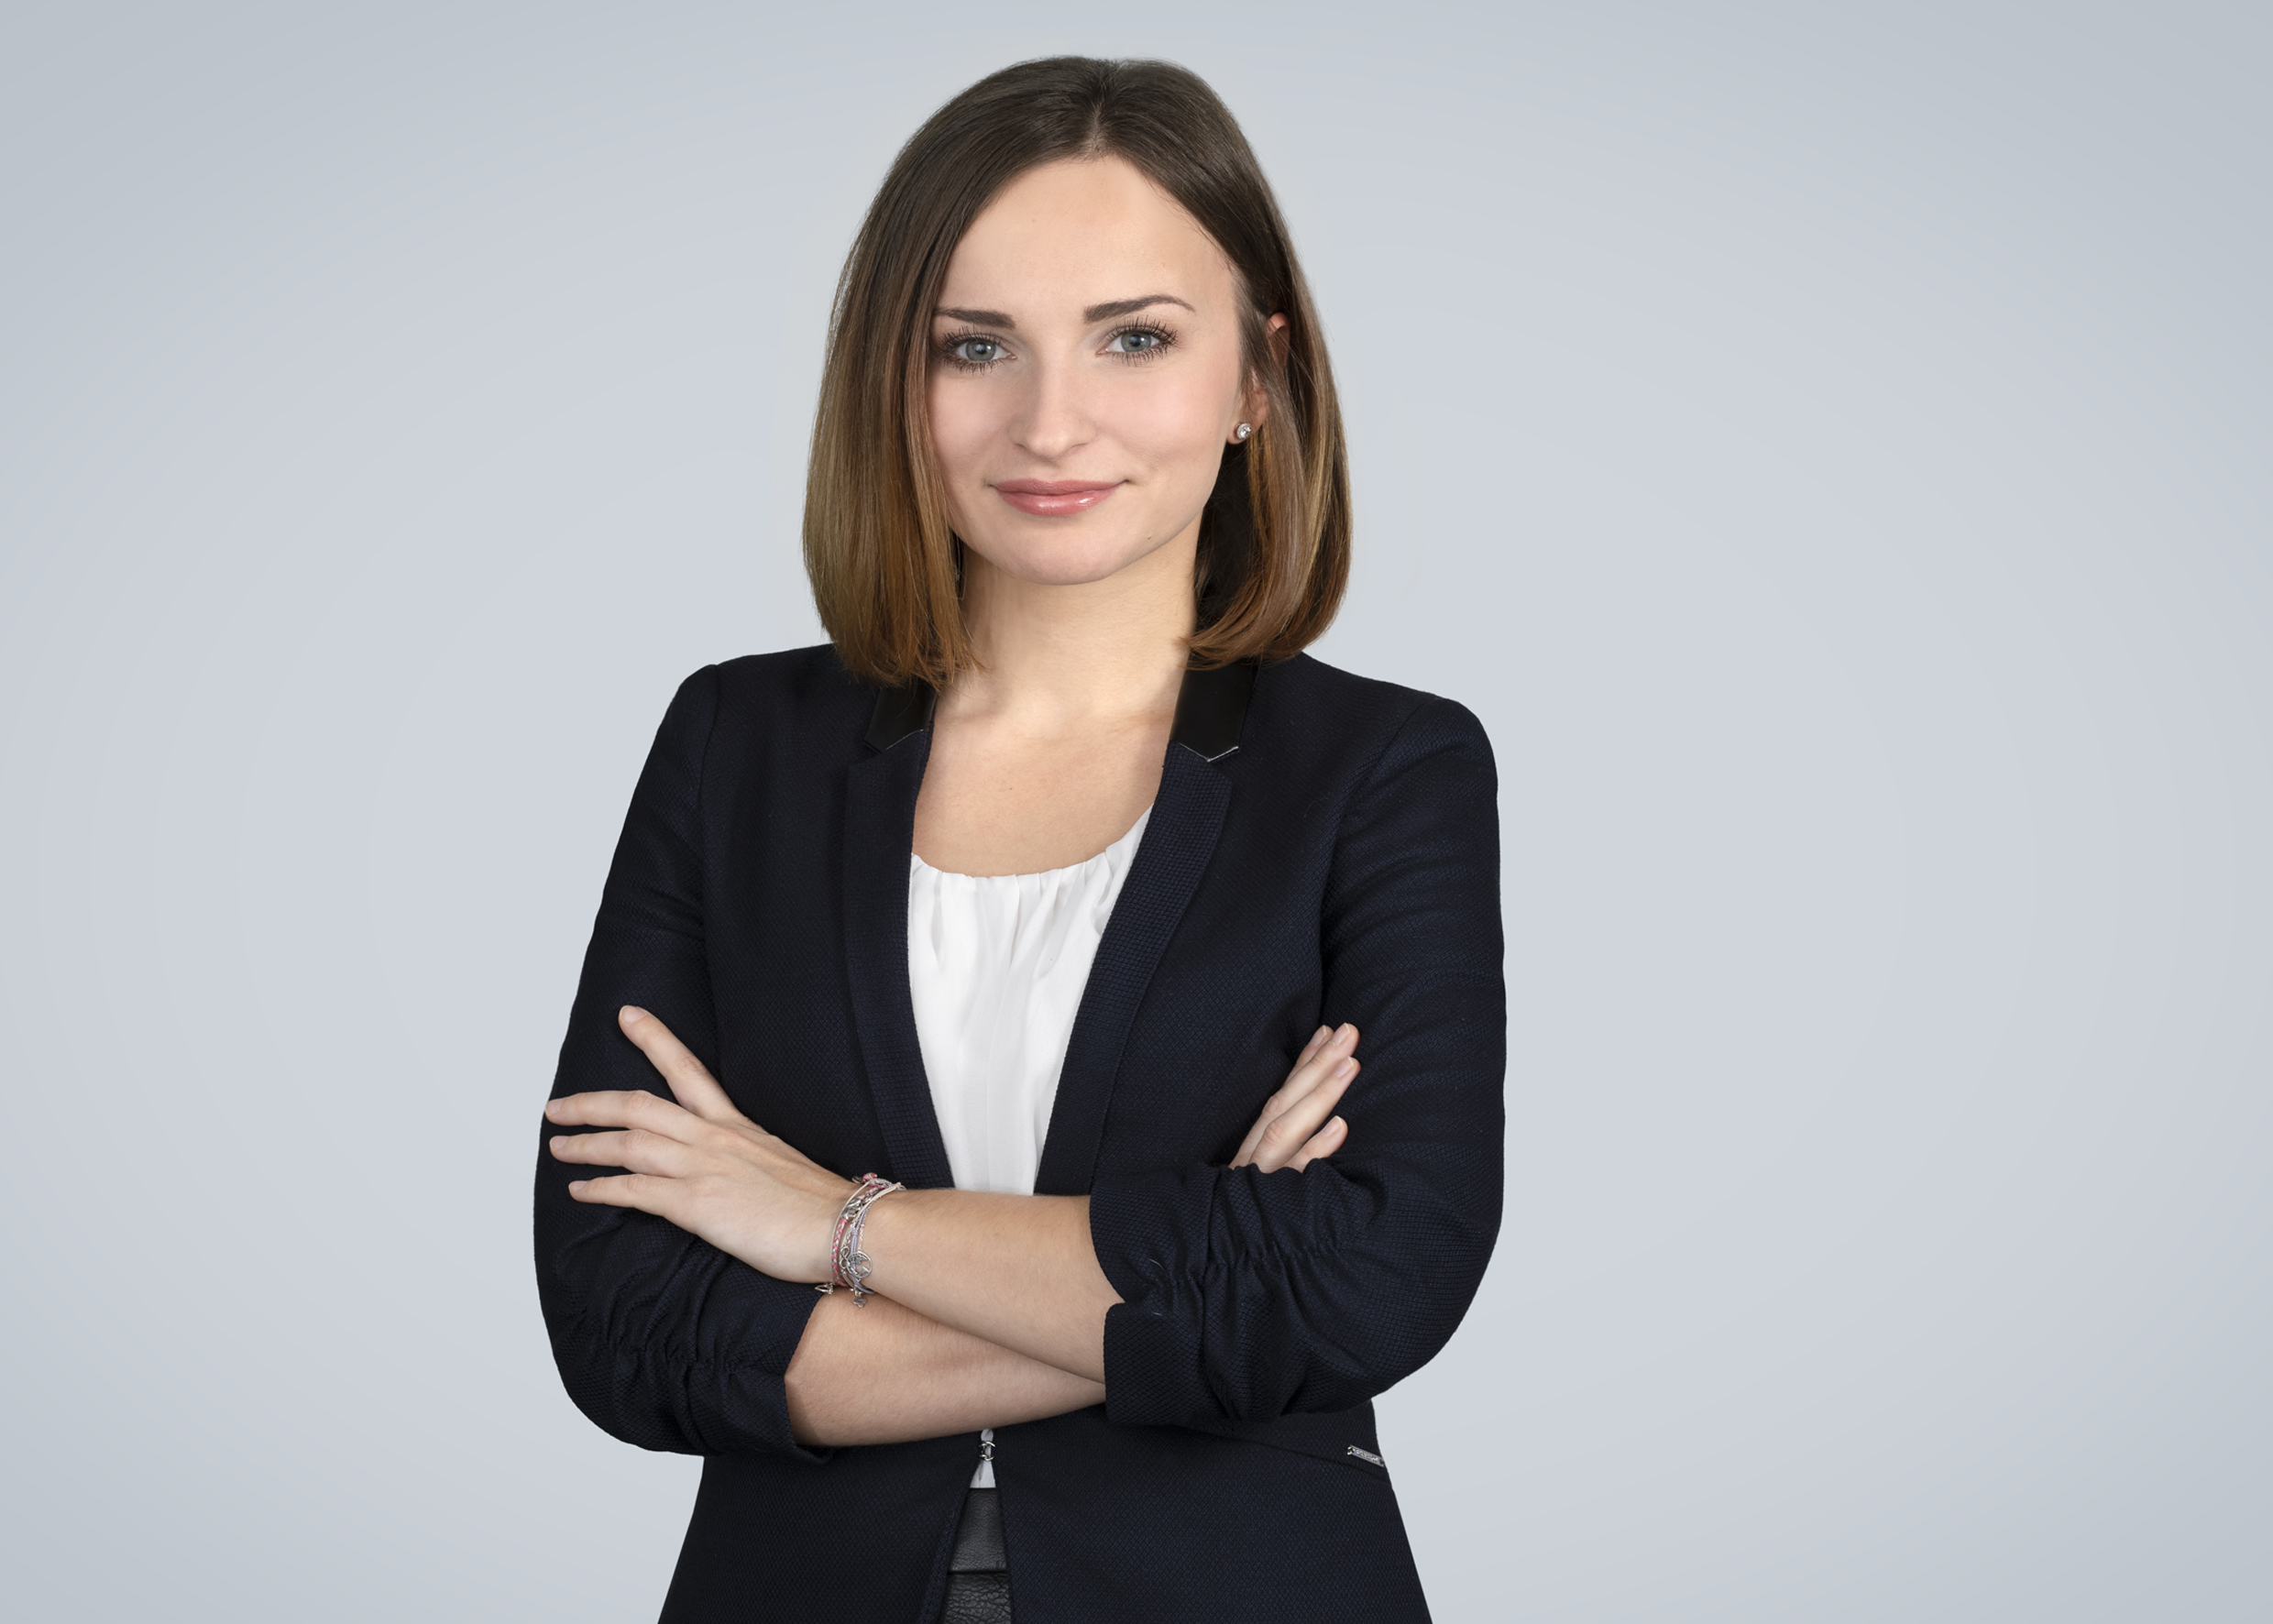 https://www.frequentis.com/karriere/hrprofils/images/Marta_C.jpg profile picture.